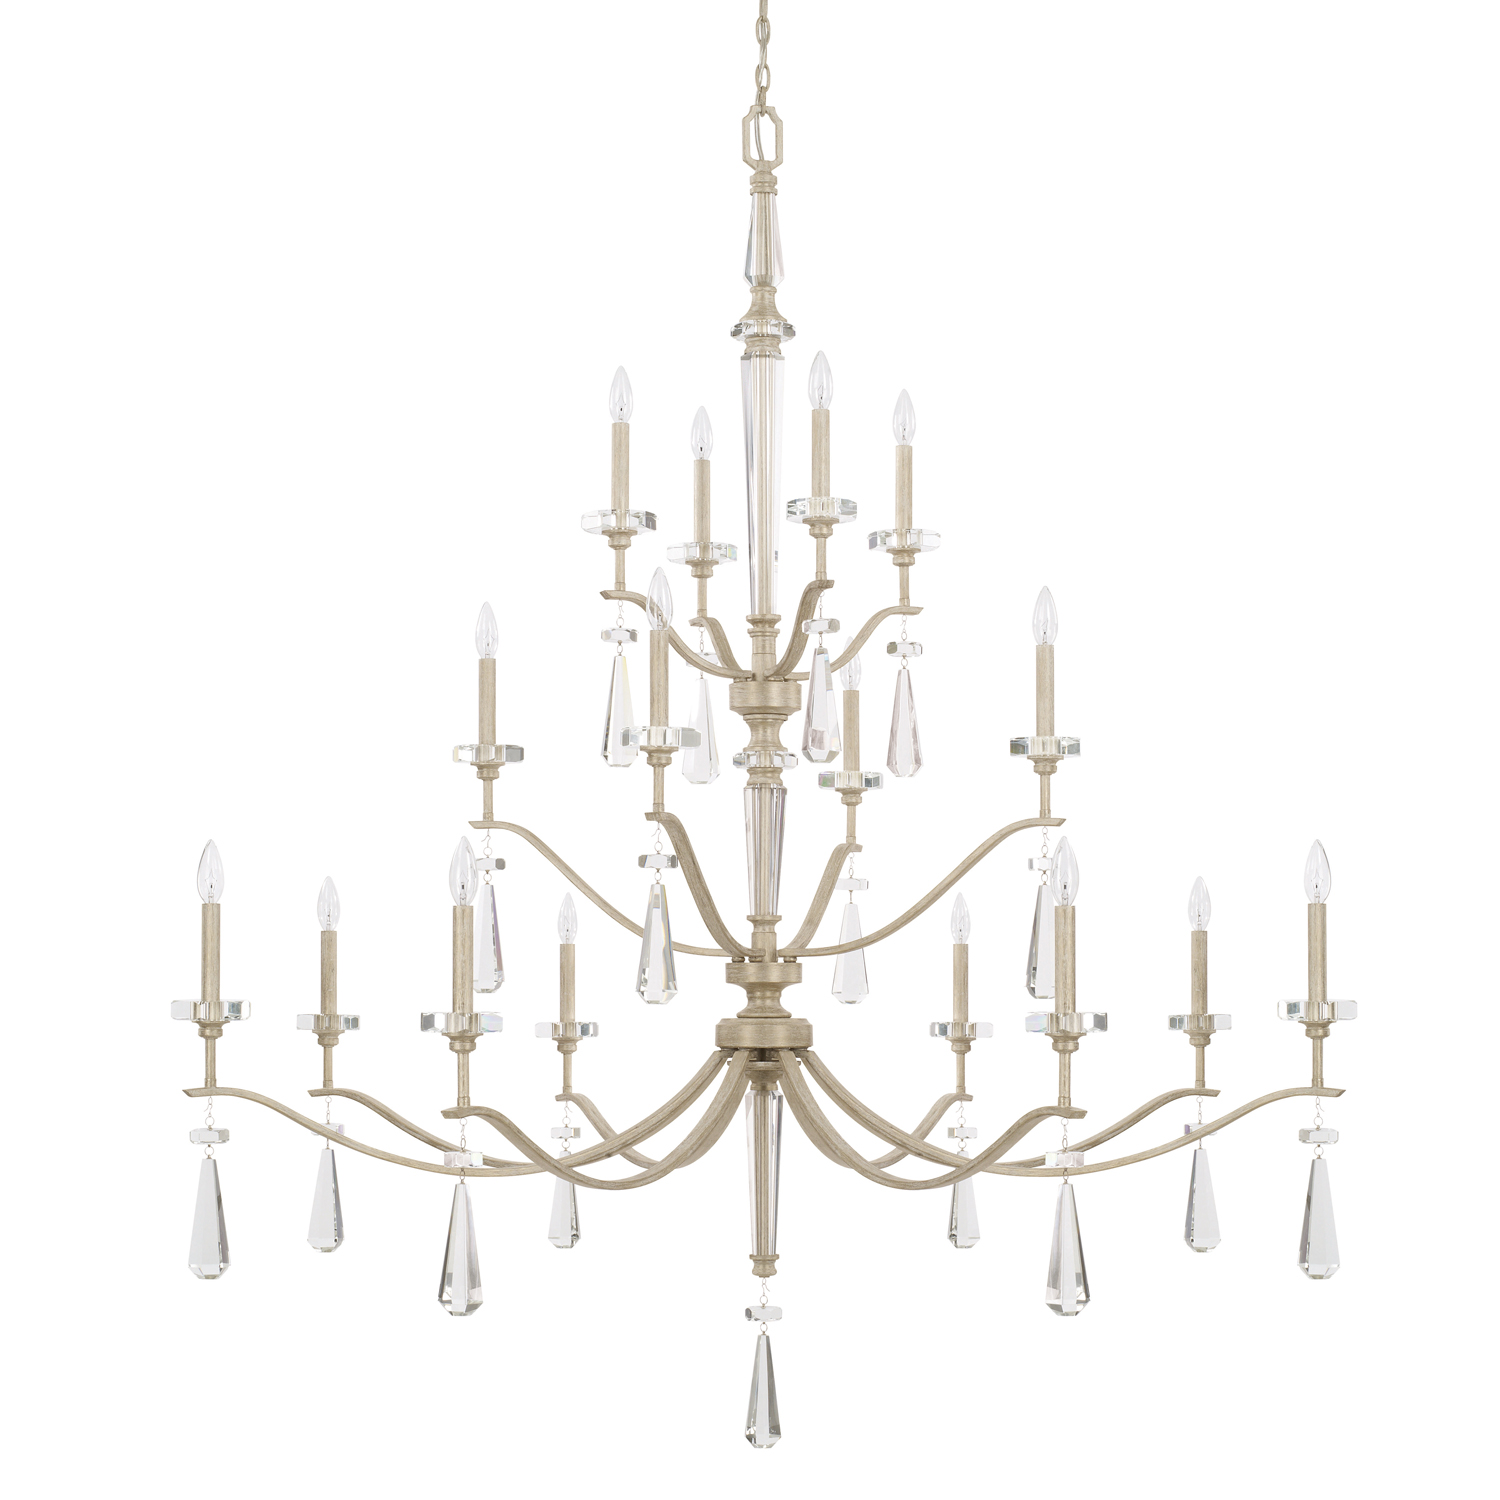 16 Light Chandelier from the Serena collection by Capital Lighting 427802WW